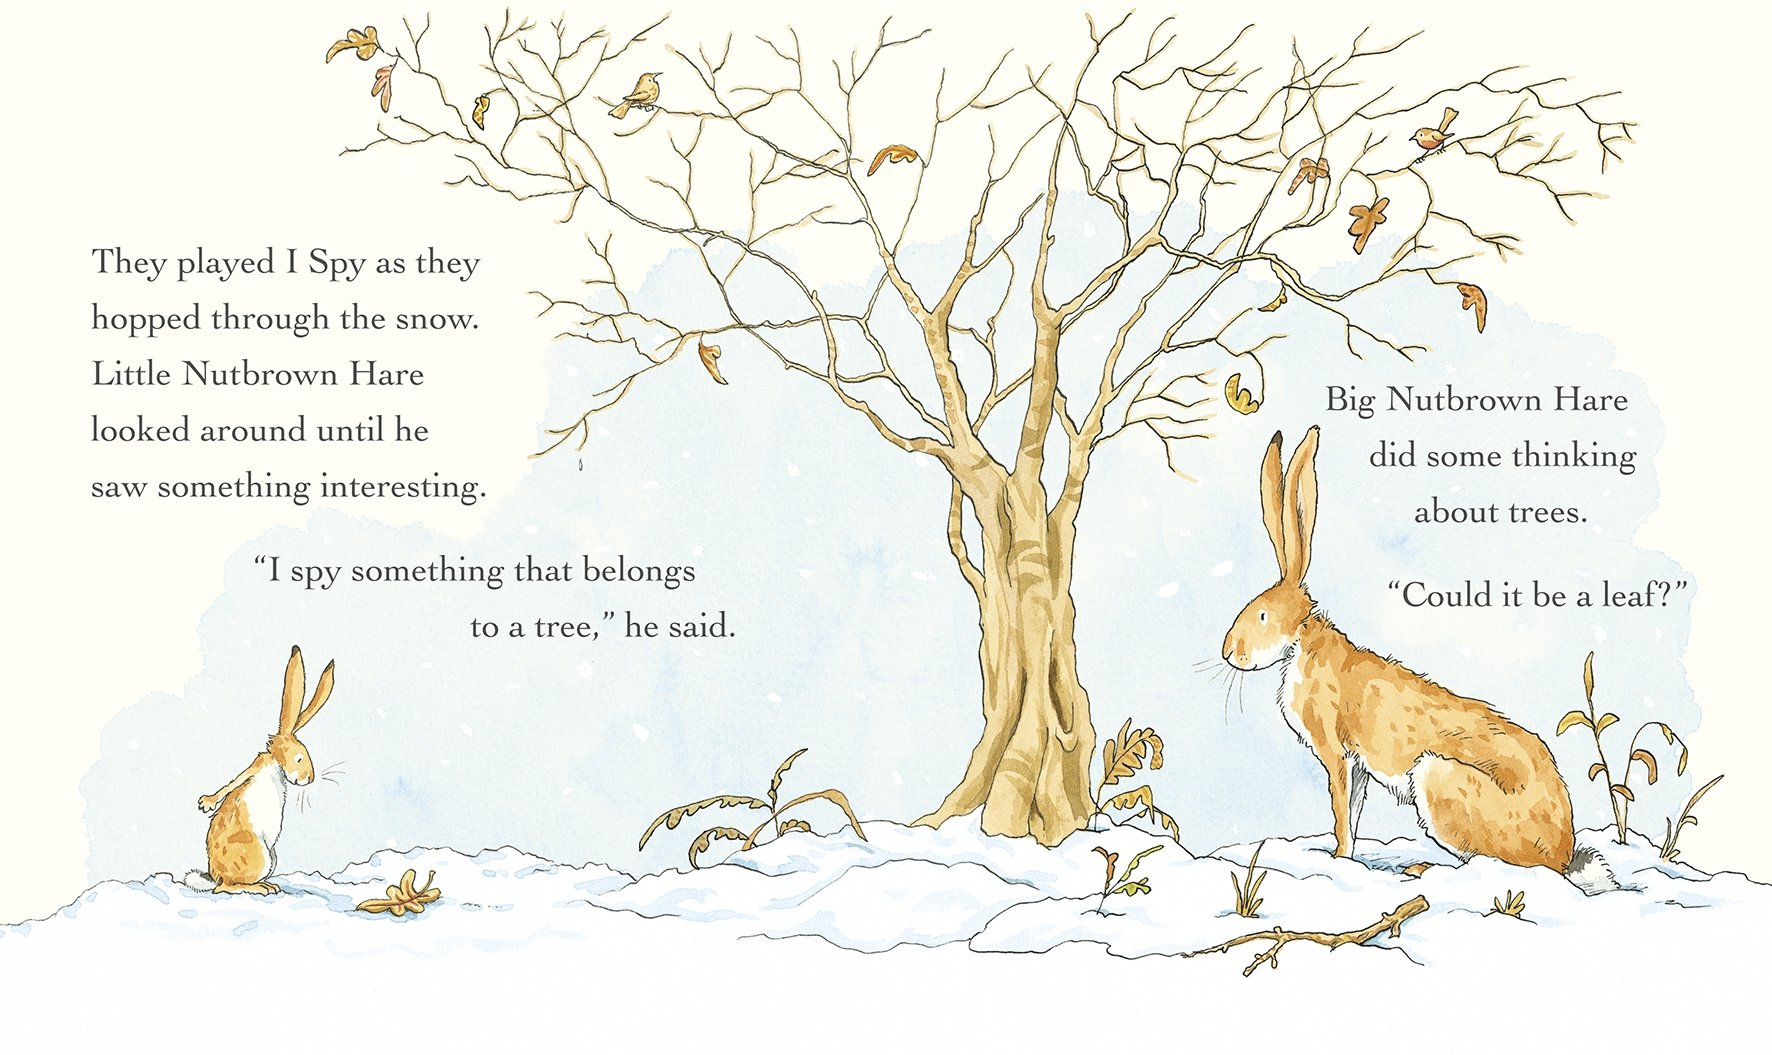 d7681bb8f88e Guess How Much I Love You in the Winter: Amazon.co.uk: Sam McBratney, Anita  Jeram: Books